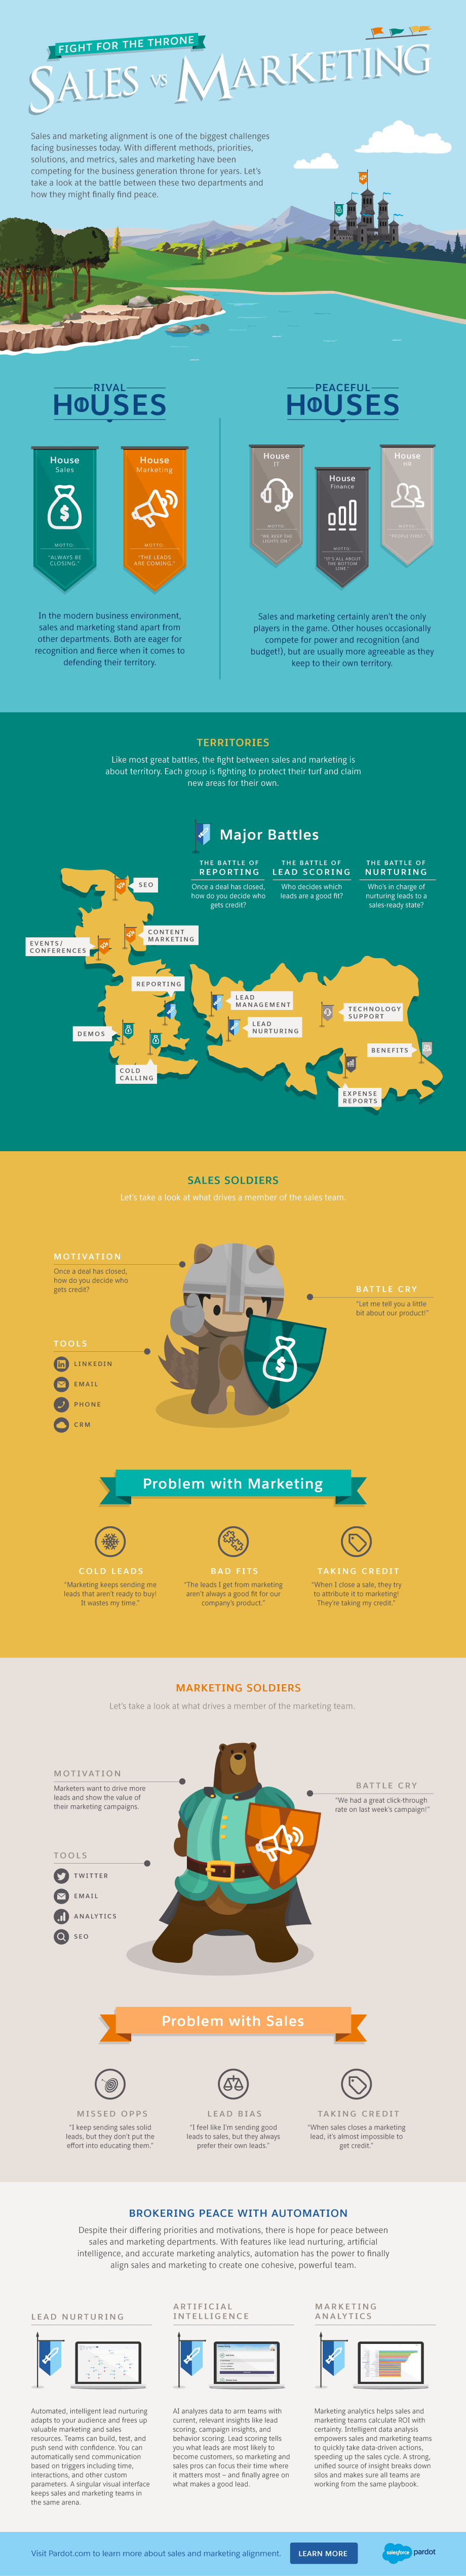 Fight for the Throne: Sales vs. Marketing